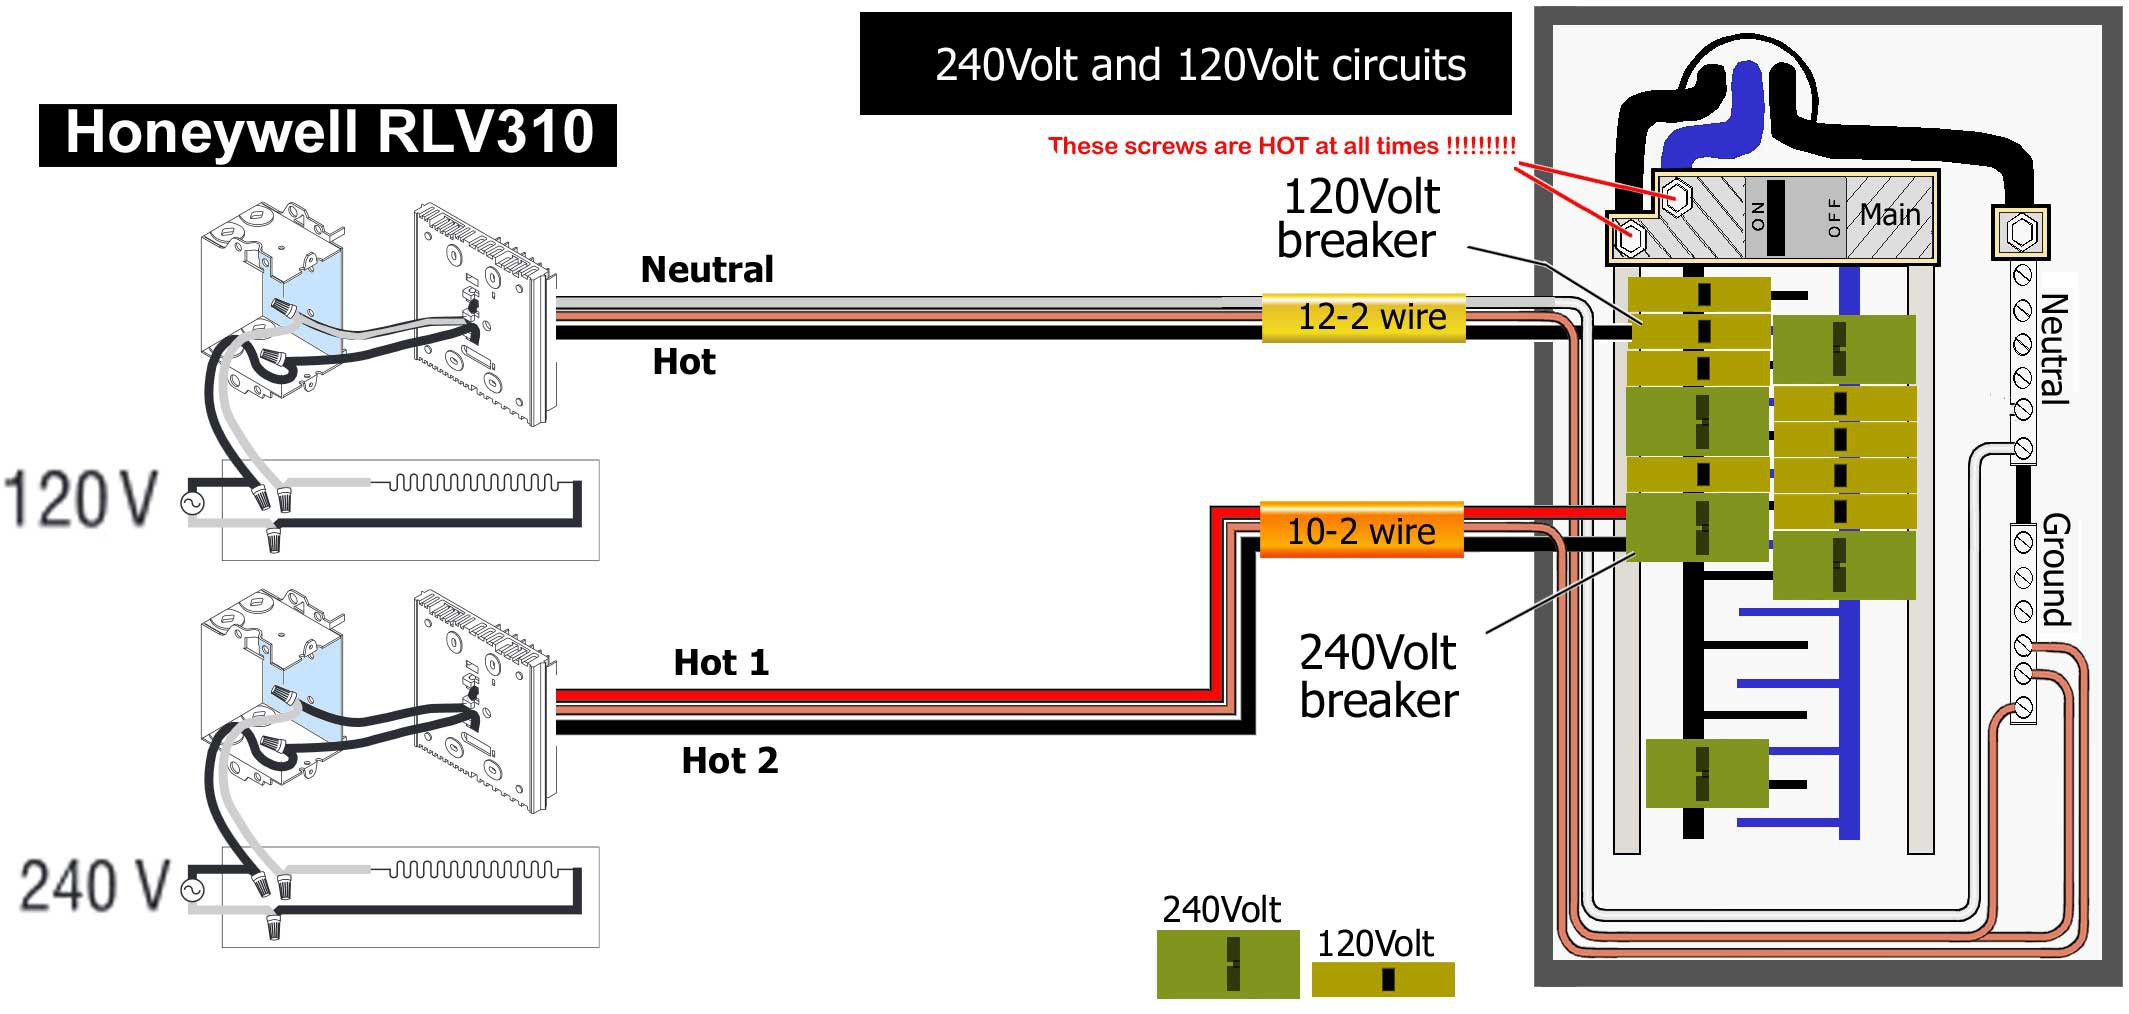 Double Pole Wiring Diagram | Msyc Switch Wiring Diagram - Double Pole Thermostat Wiring Diagram